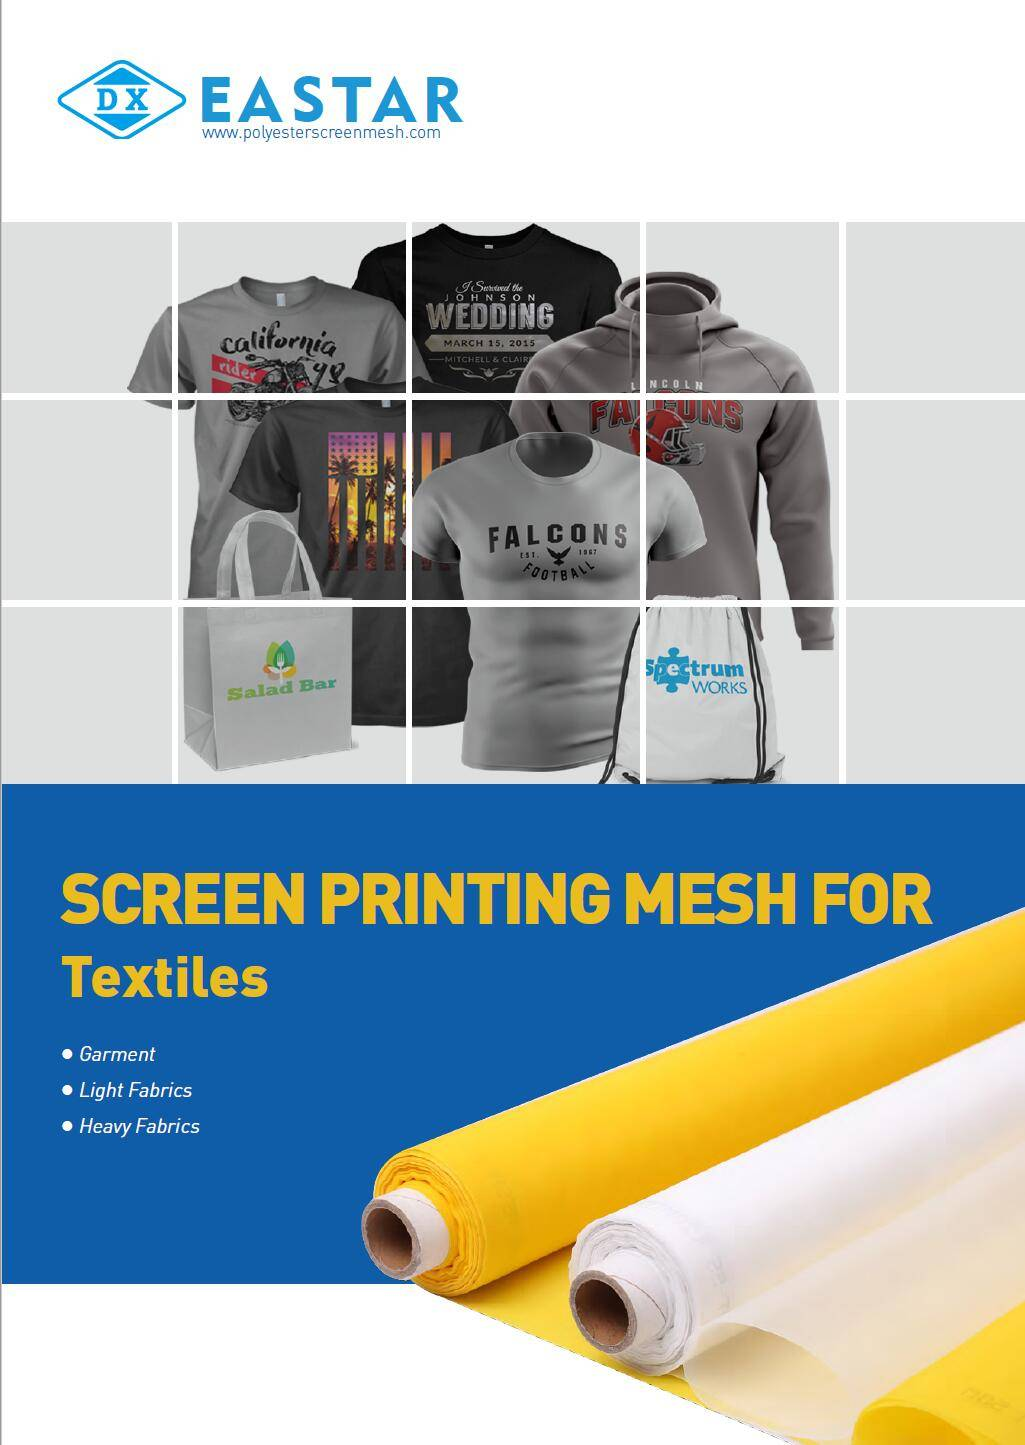 Polyester screen printing mesh for textile screen printing.